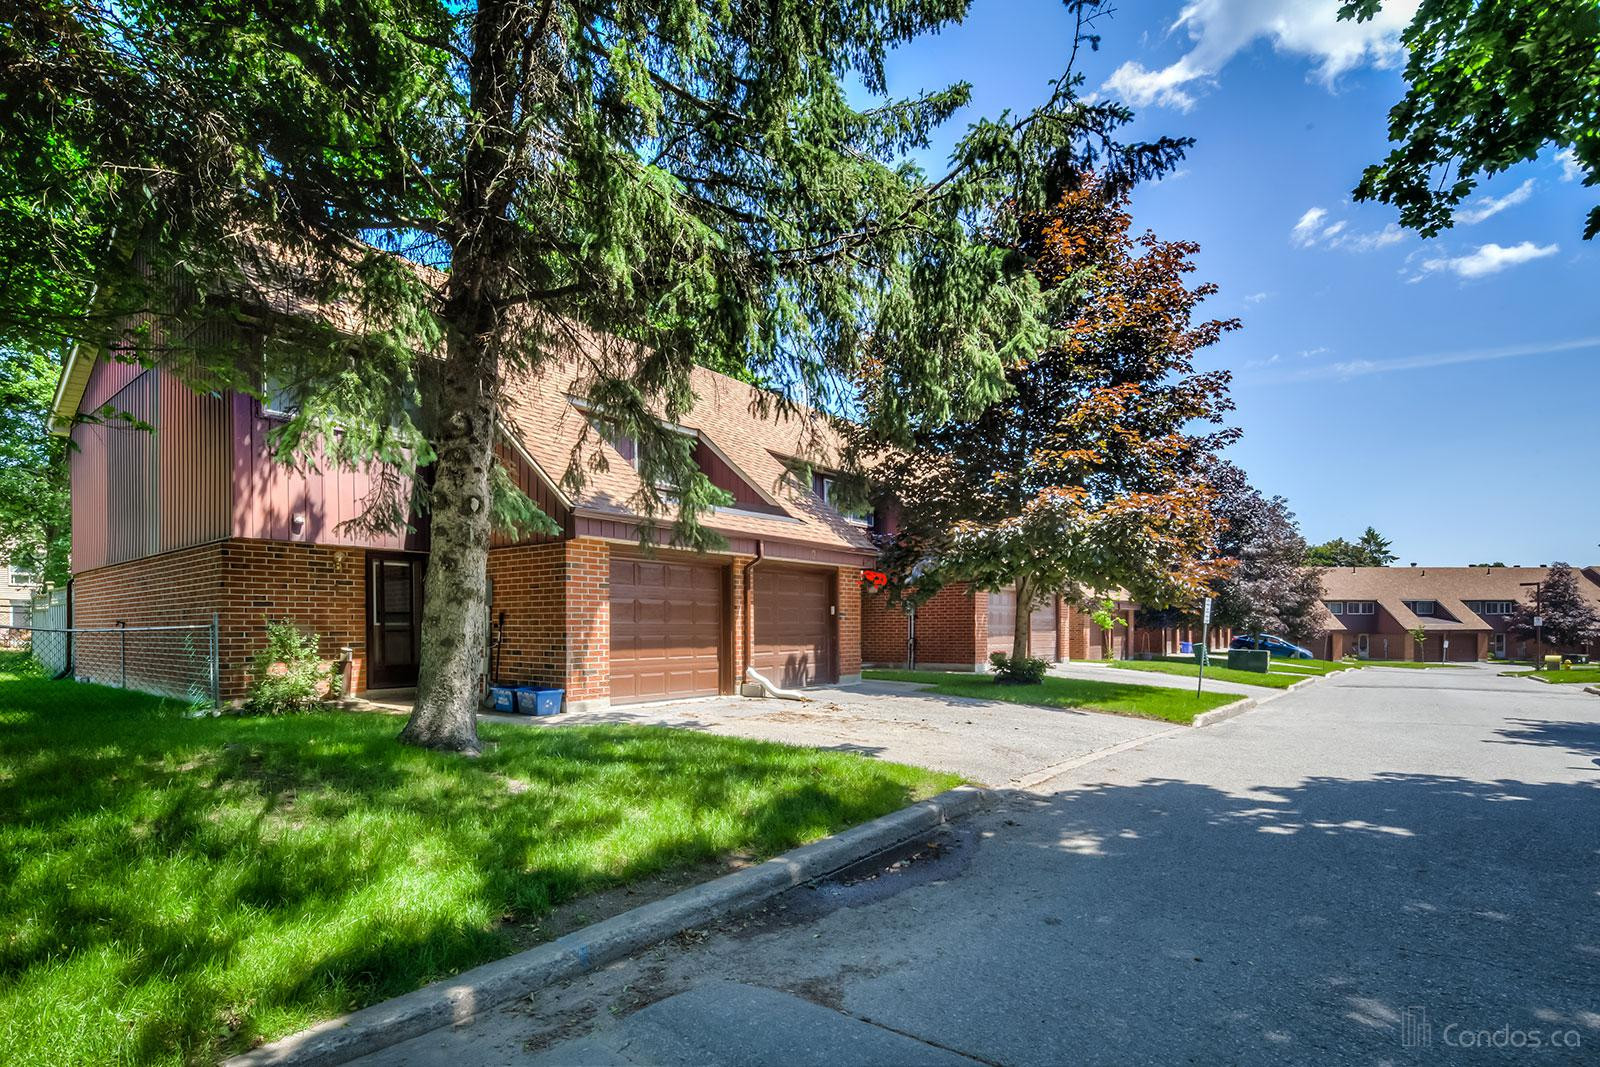 Barrie Road Condos at 441 Barrie Rd, Orillia 0